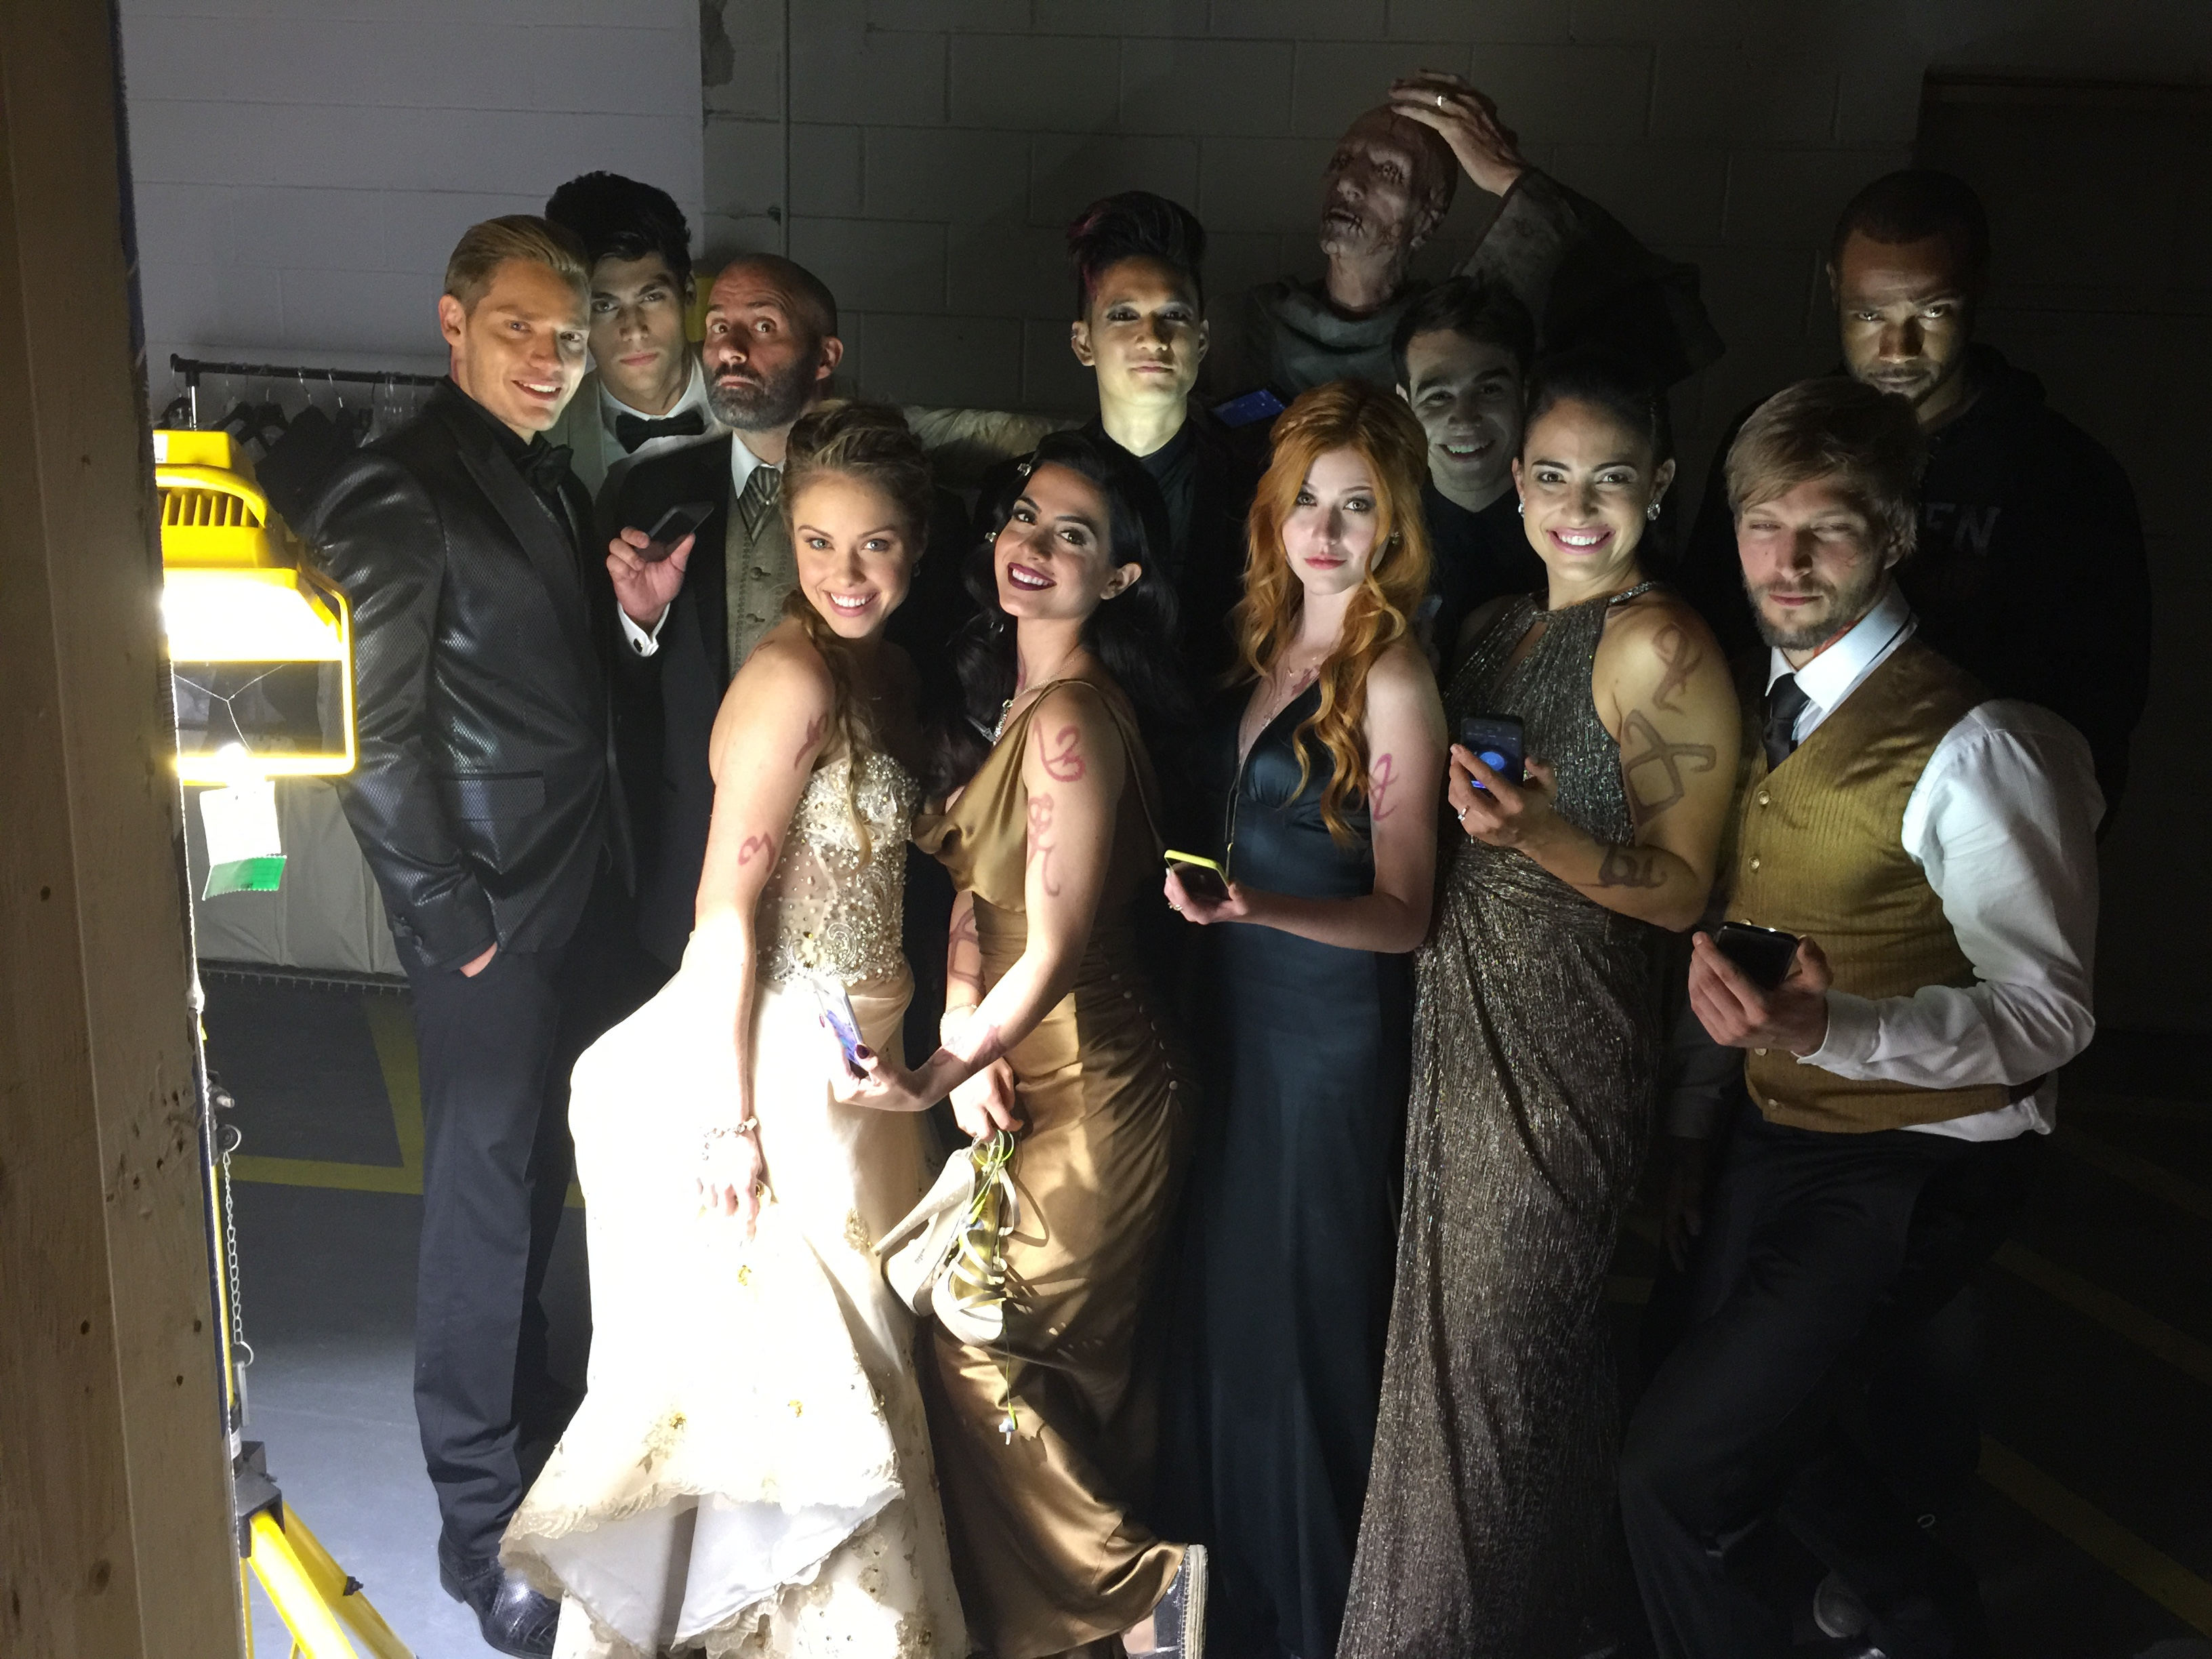 Shadowhunters - Amazing Behind The Scenes Pics From Episode 12's Wedding! - 1011